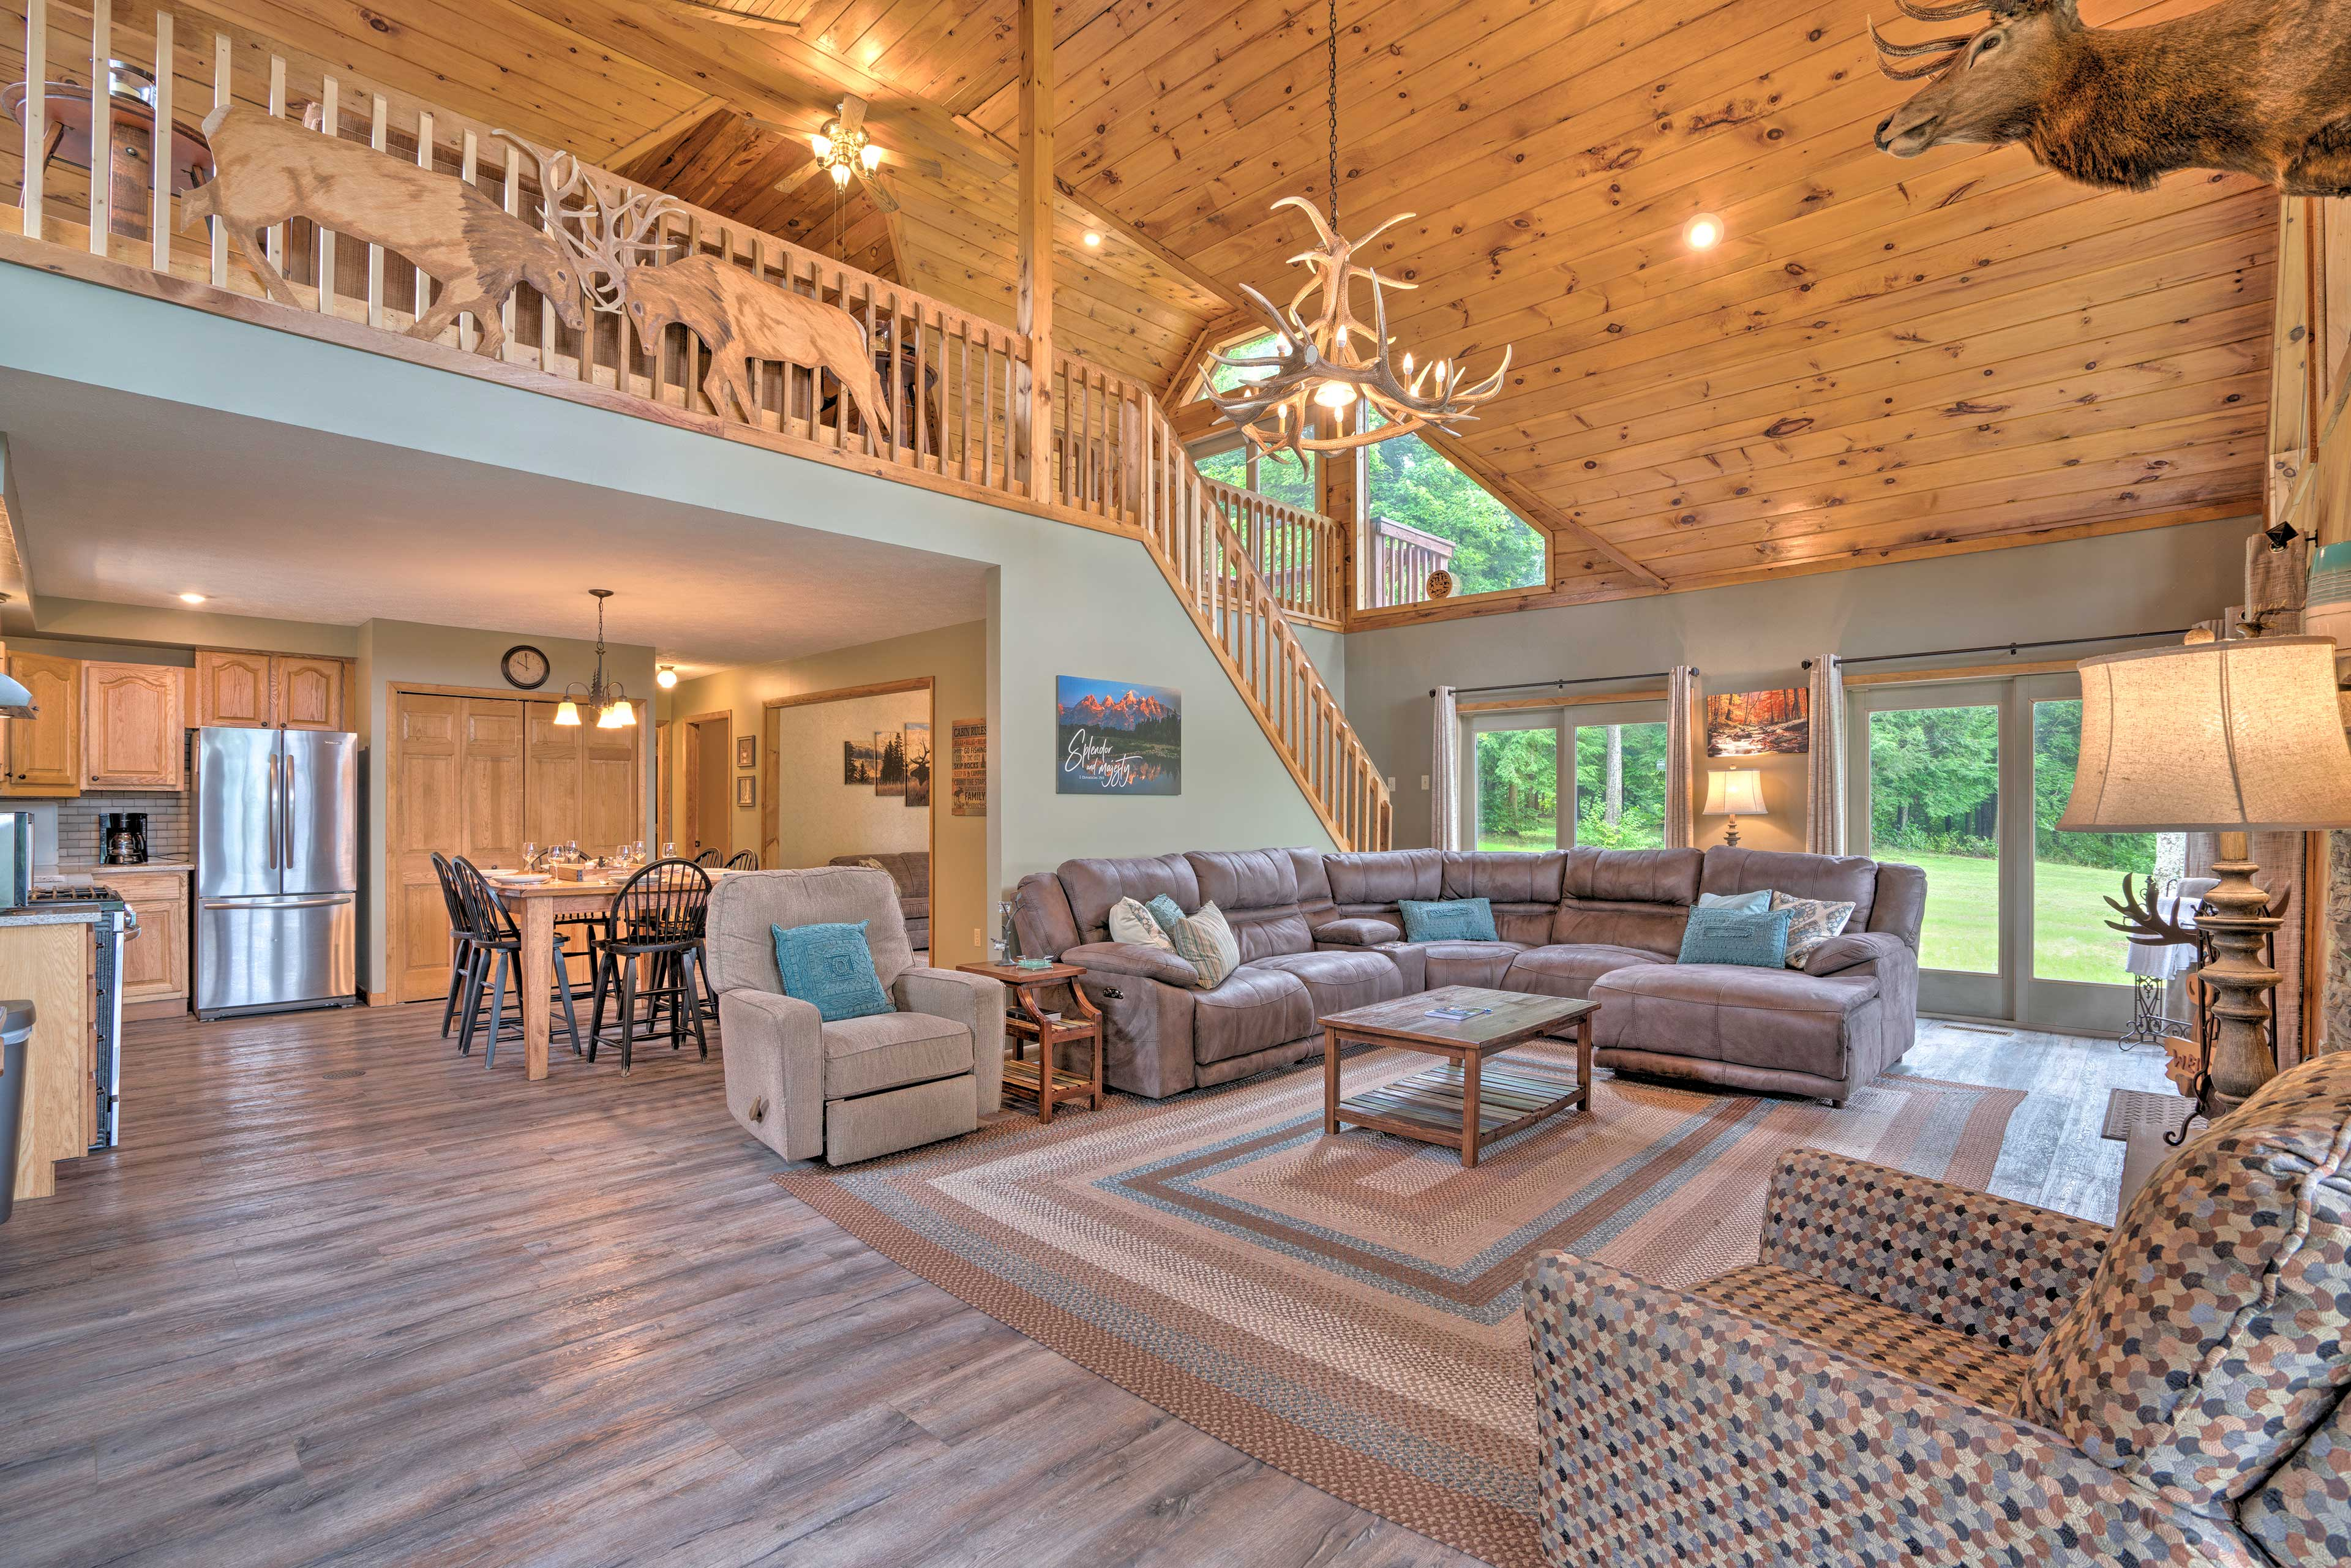 The vaulted ceilings are a dream!